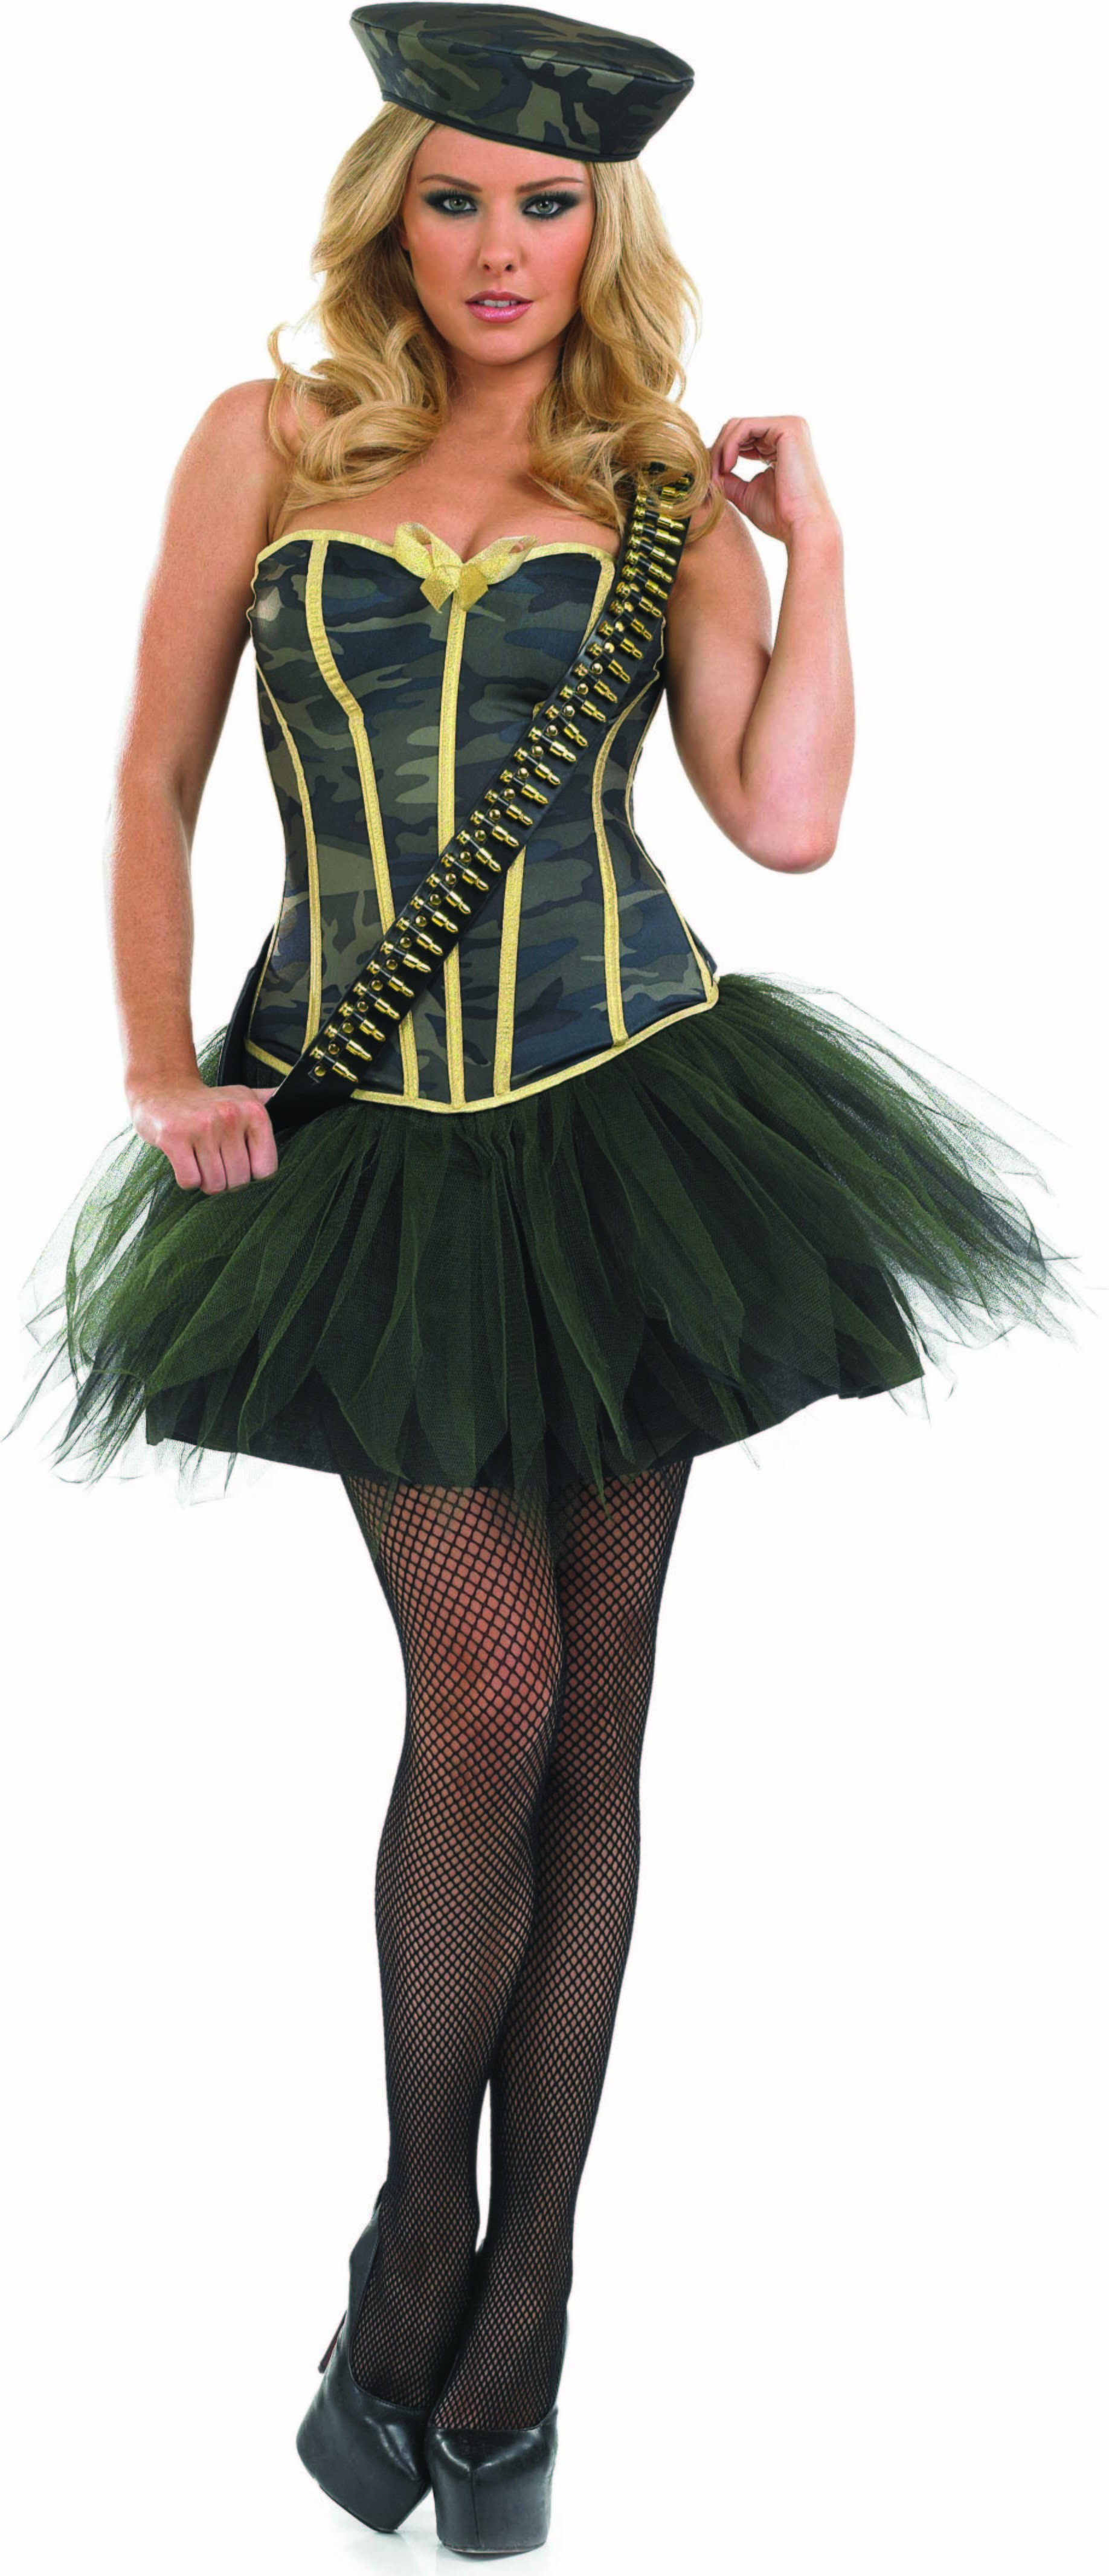 Ladies Tutu Army Girl Tutus - (Black, Gold)